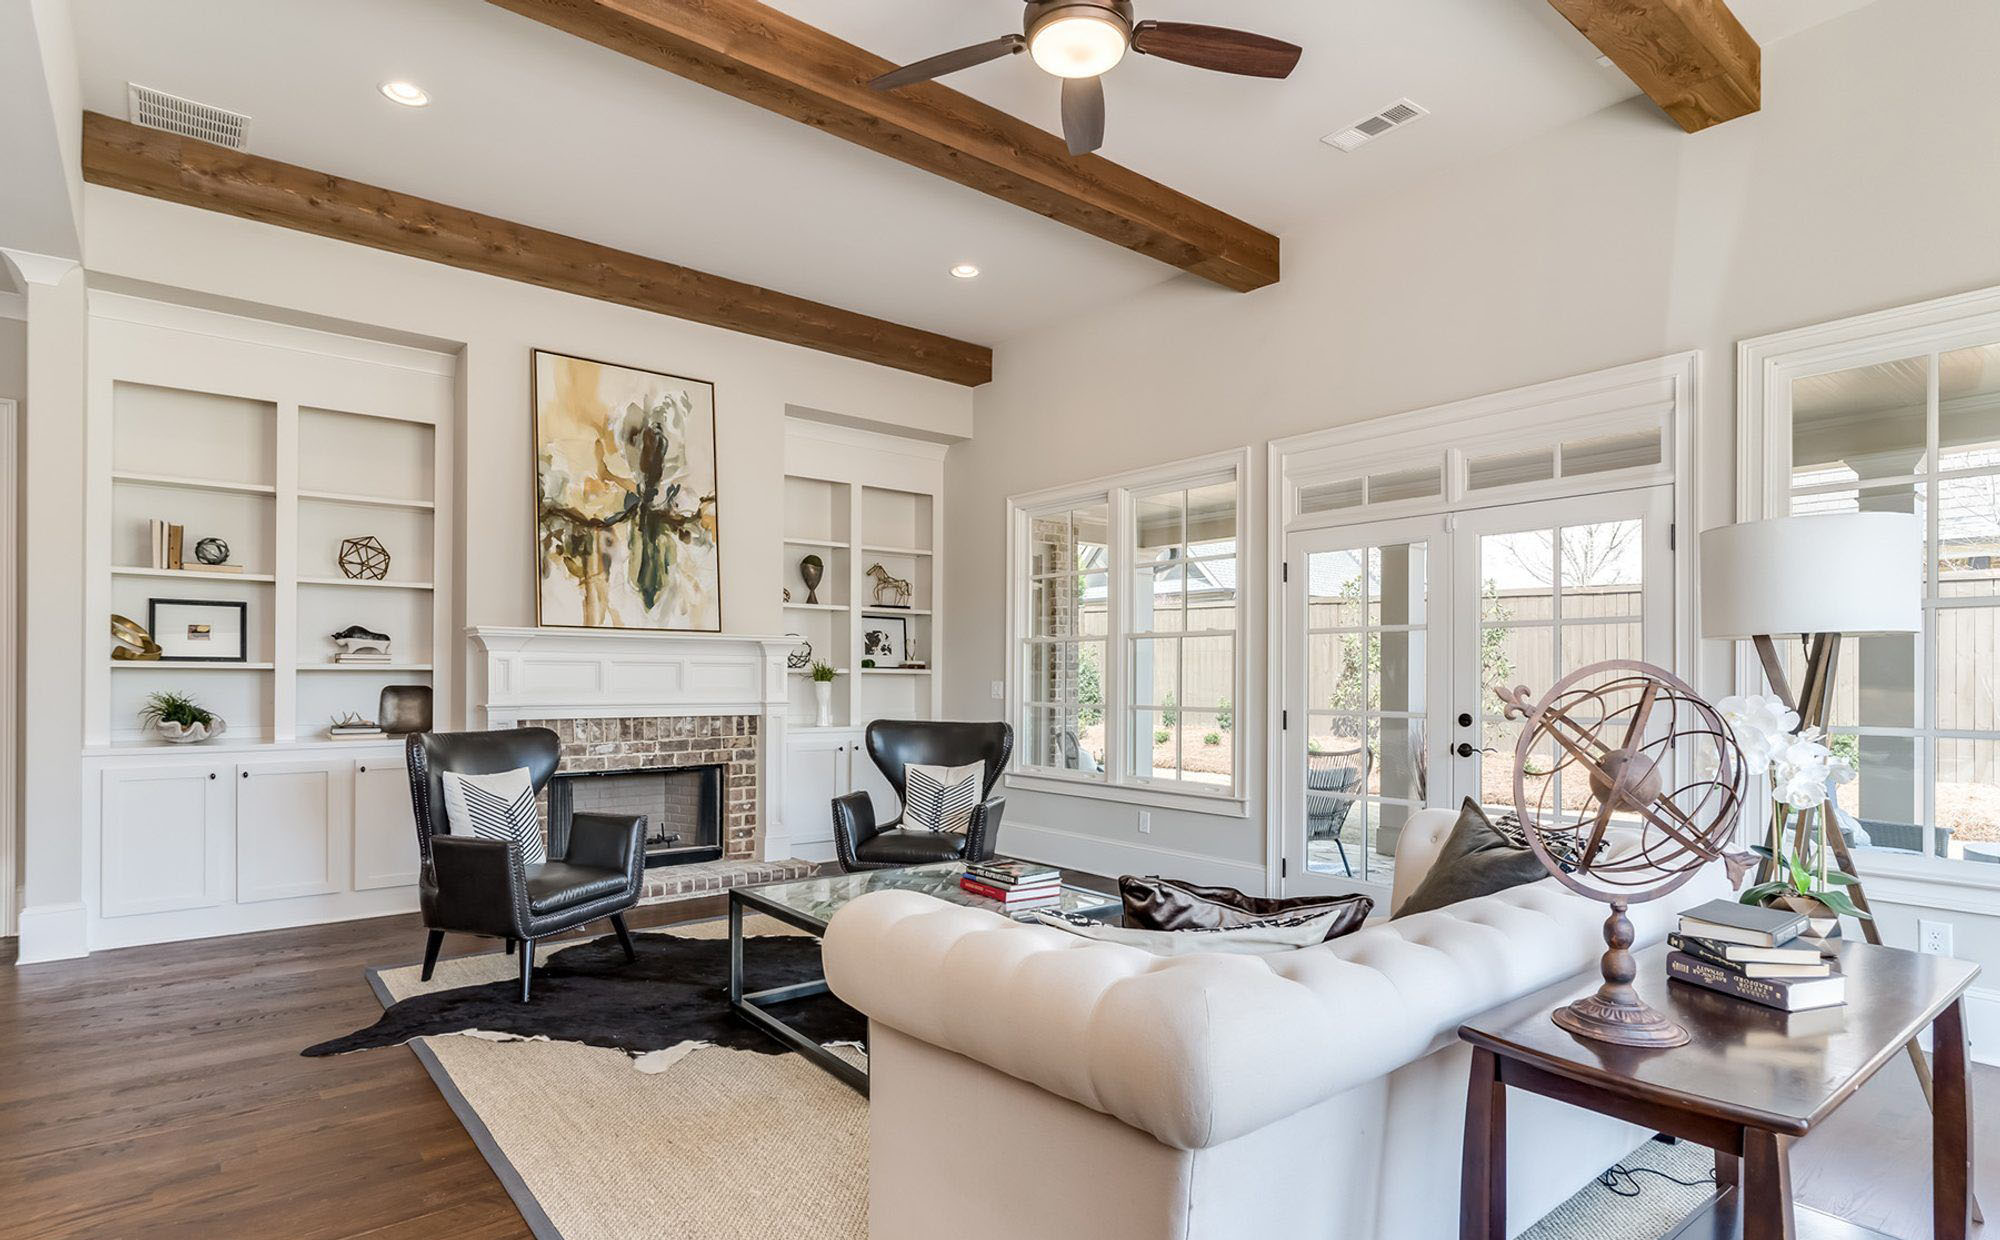 Custom home with hardwood floors and matching wood ceiling beams.